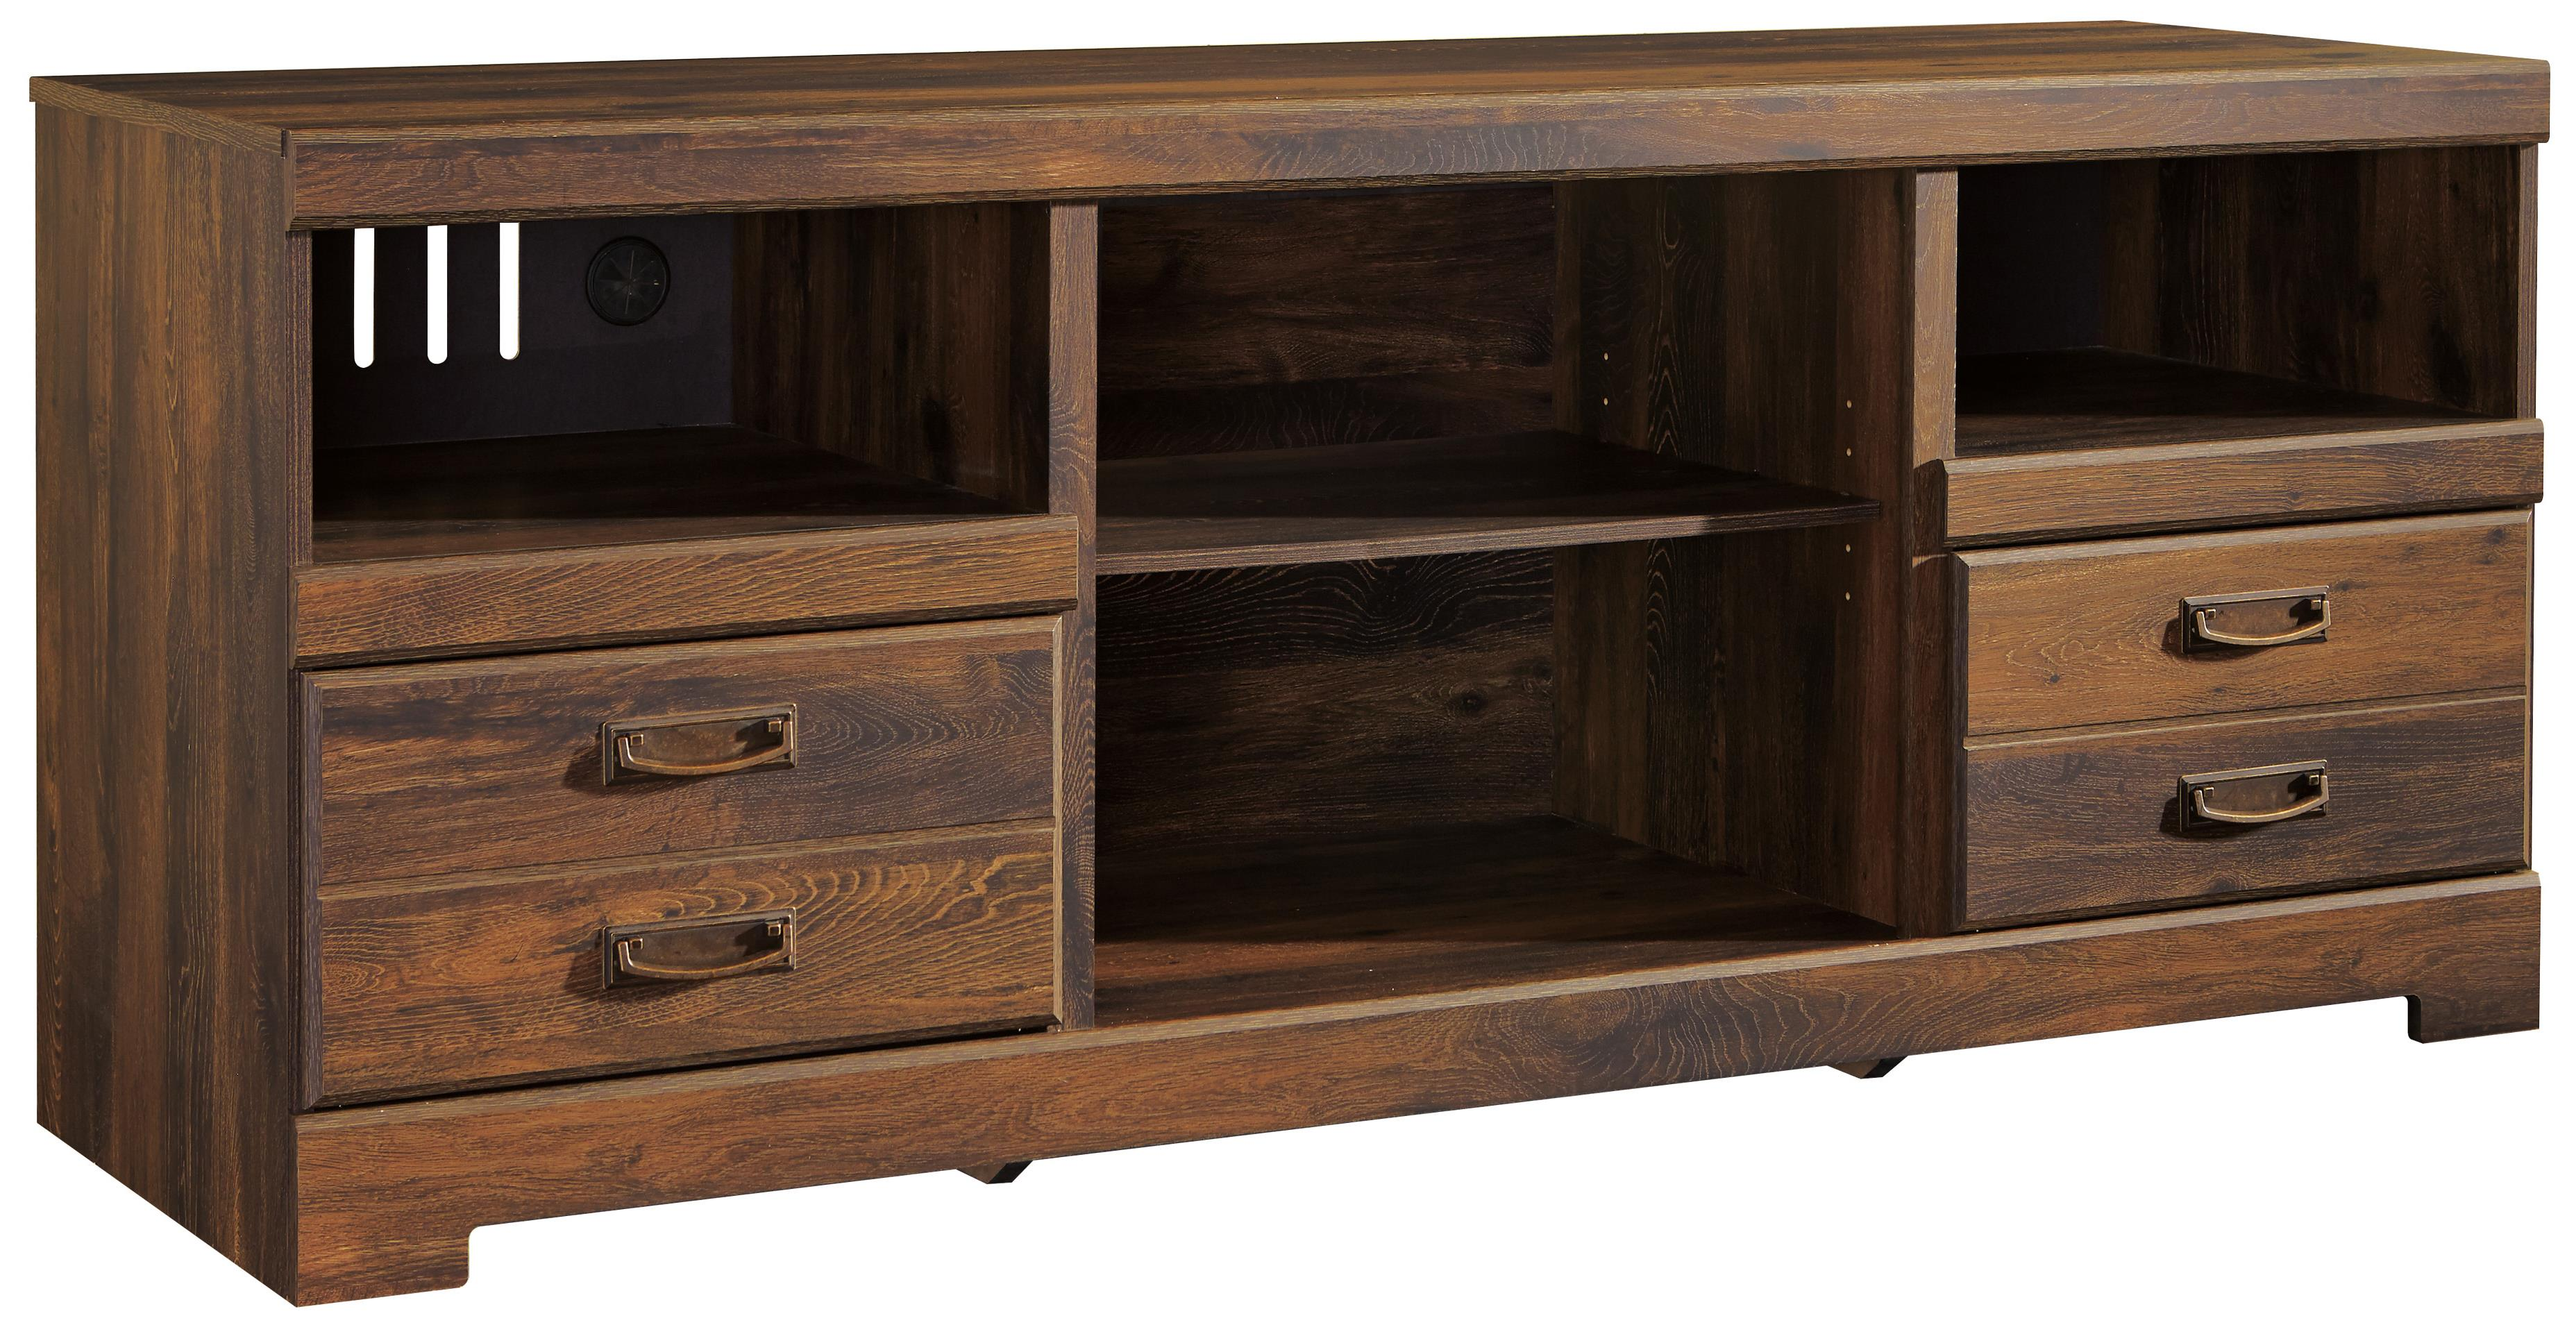 Rustic Casual Large TV Stand